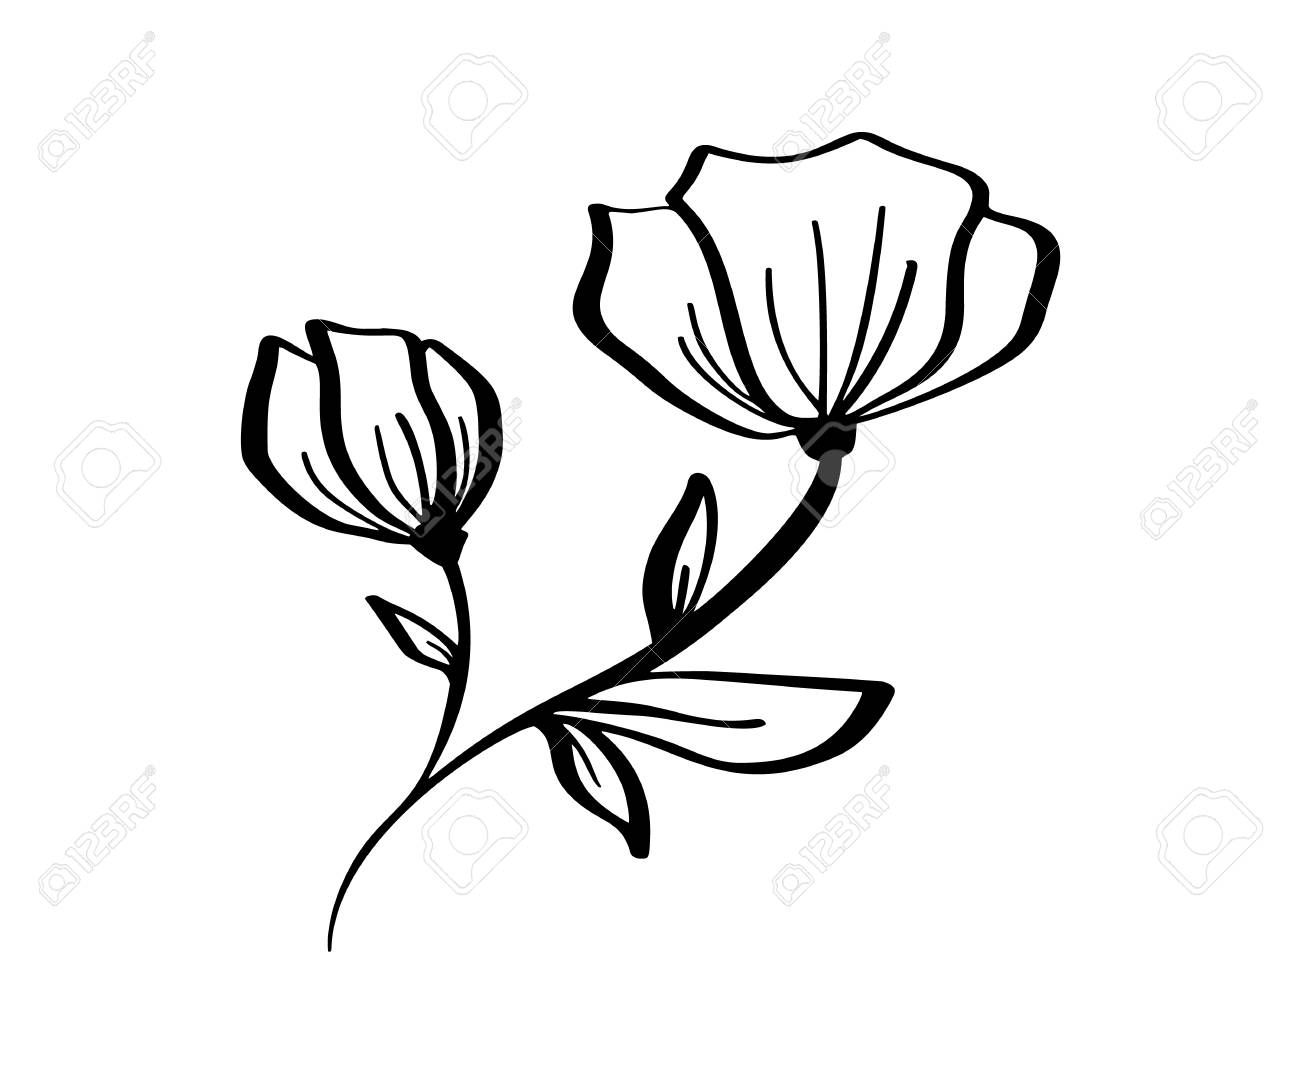 Hand drawn modern flowers drawing and sketch floral with line,art,..